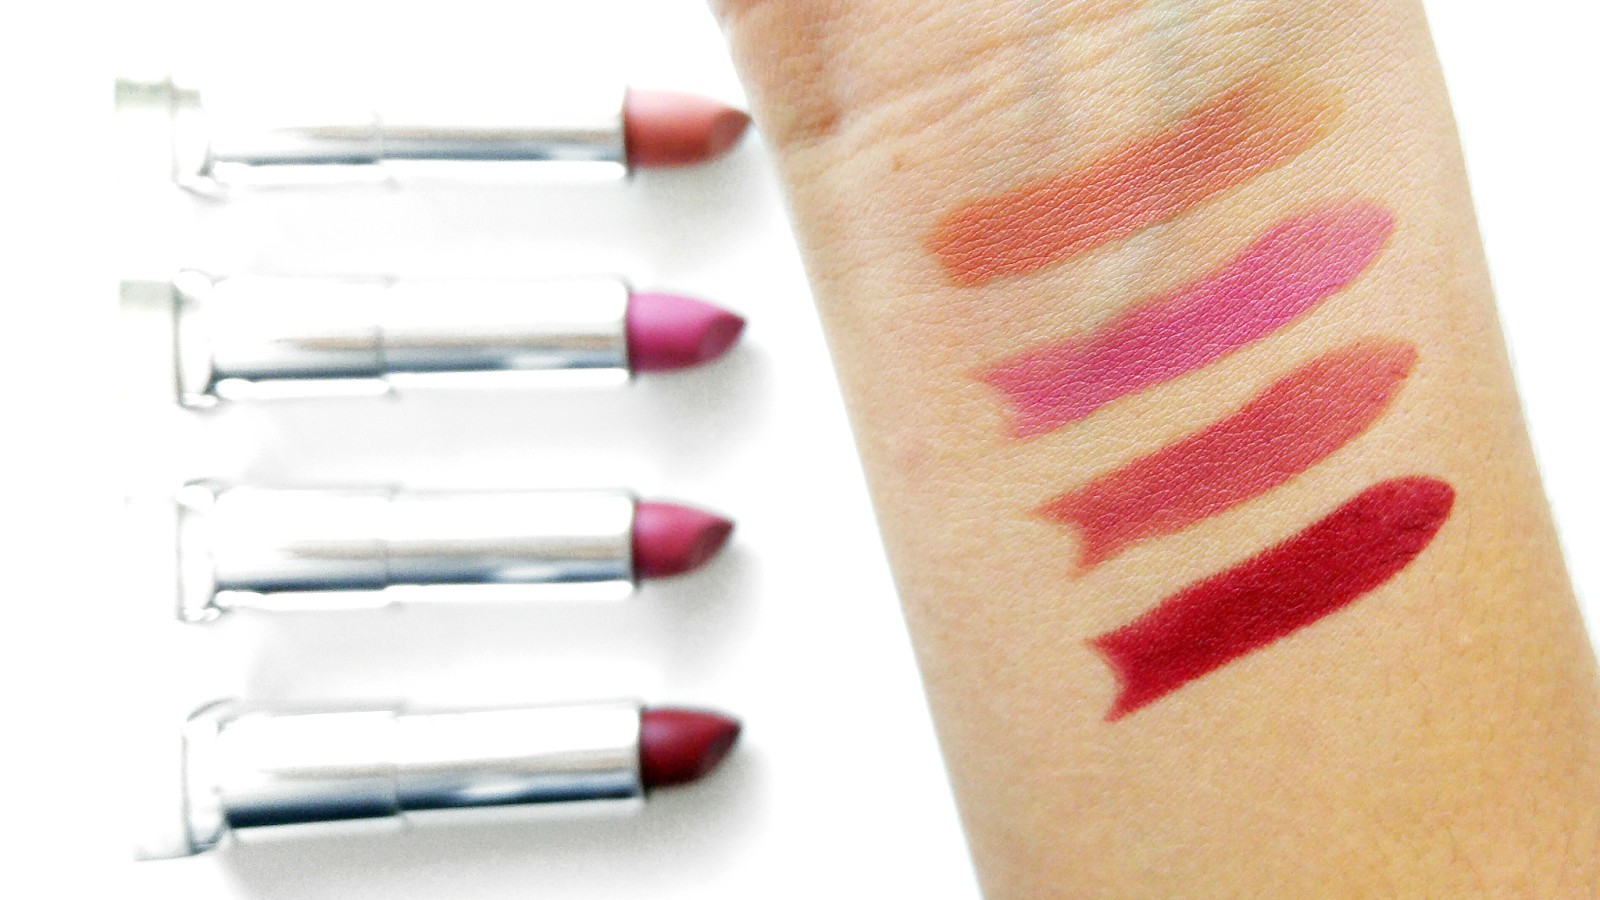 Maybelline Creamy Matte Lipsticks Swatched and Reviewed